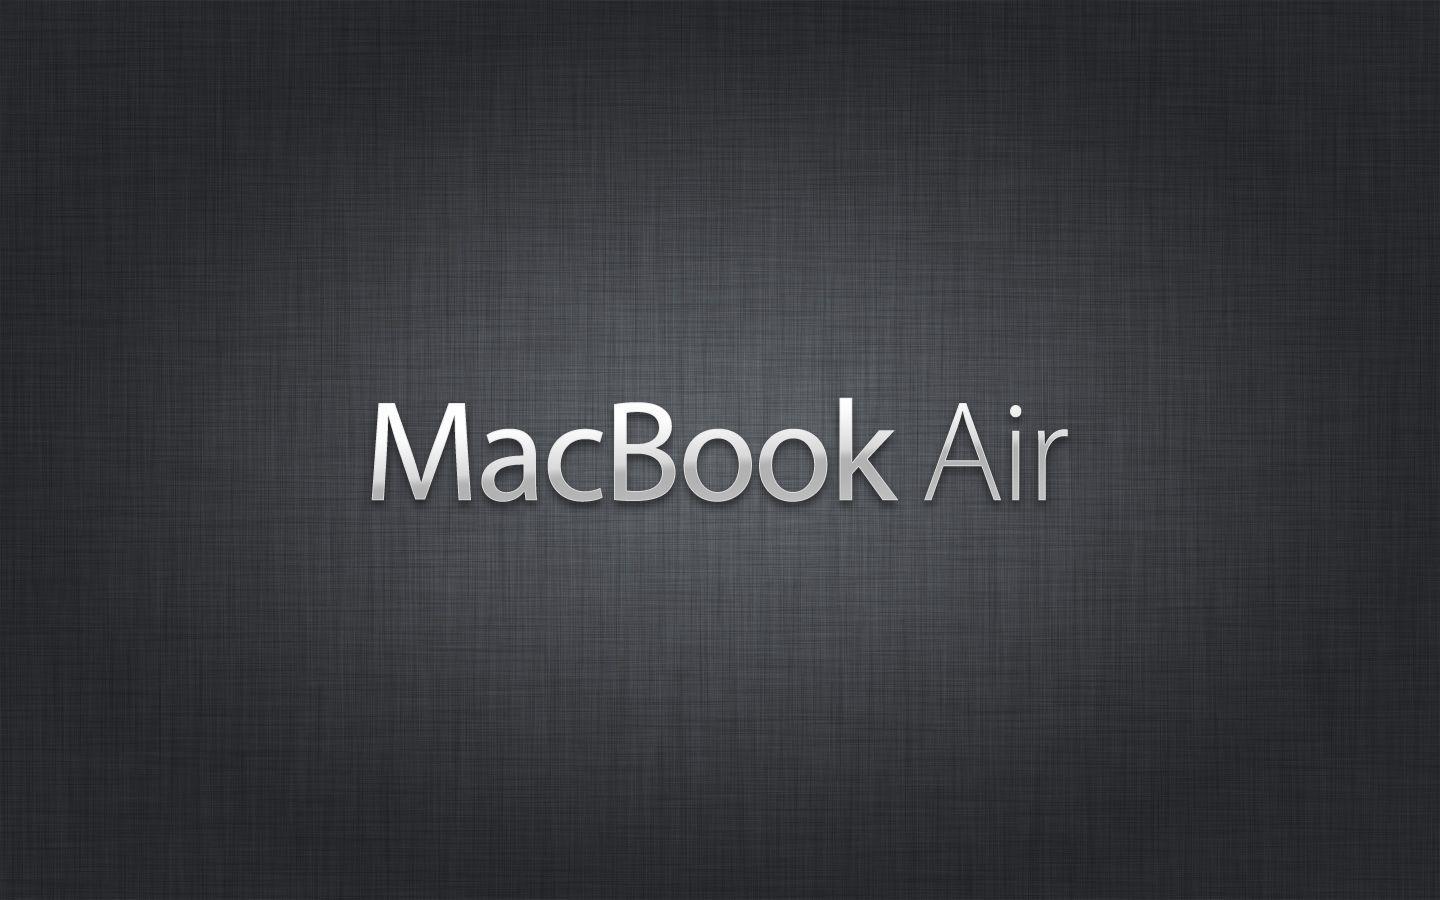 Macbook Air 13 Wallpaper